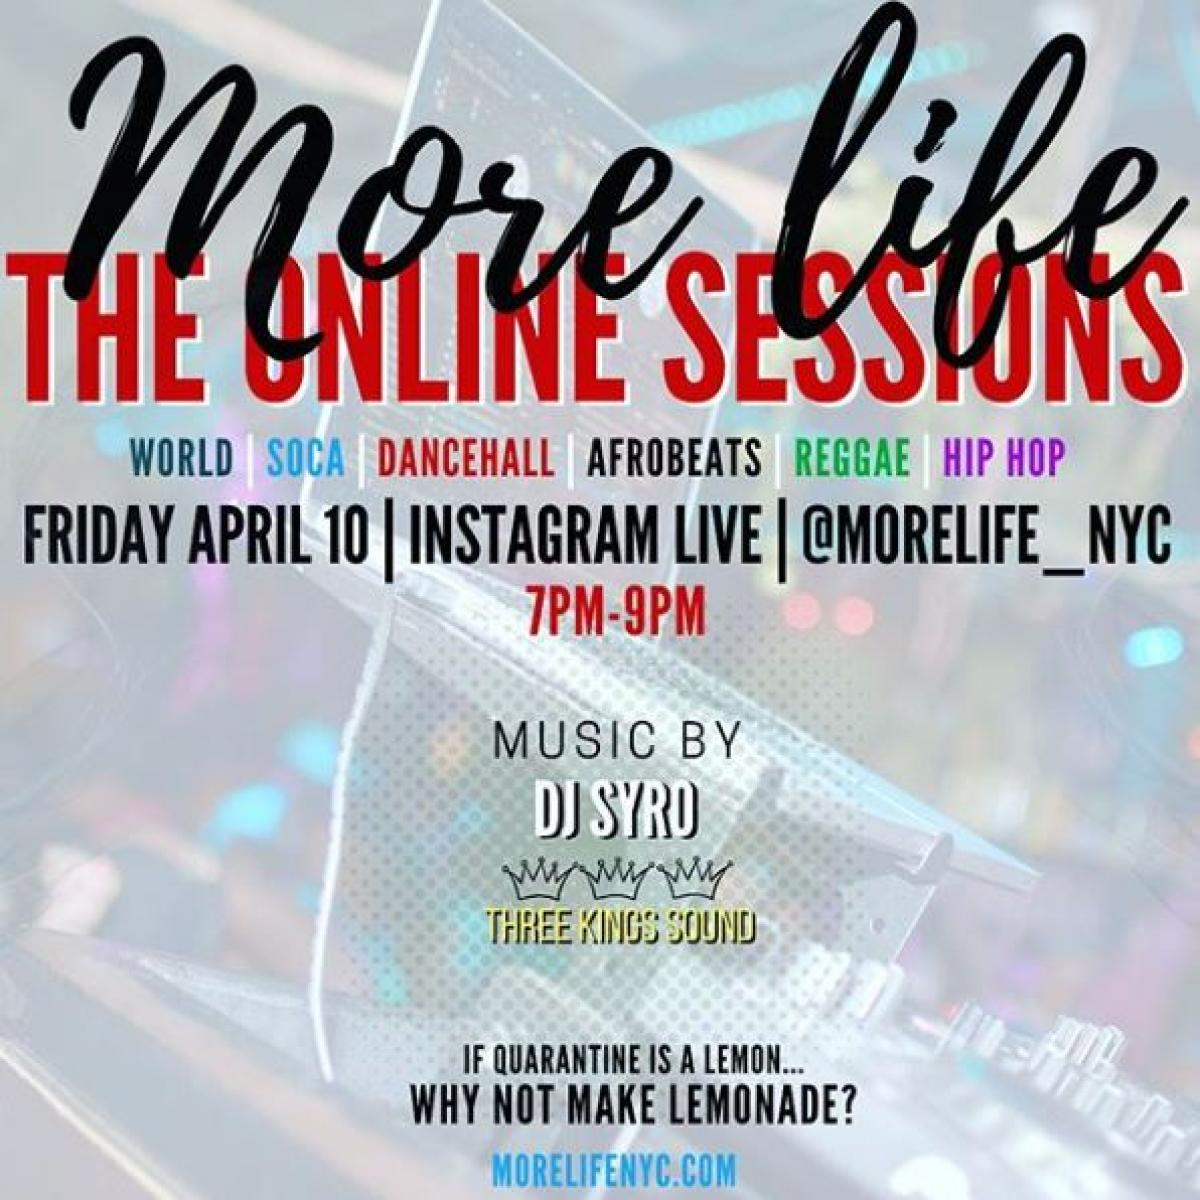 The Online Sessions flyer or graphic.